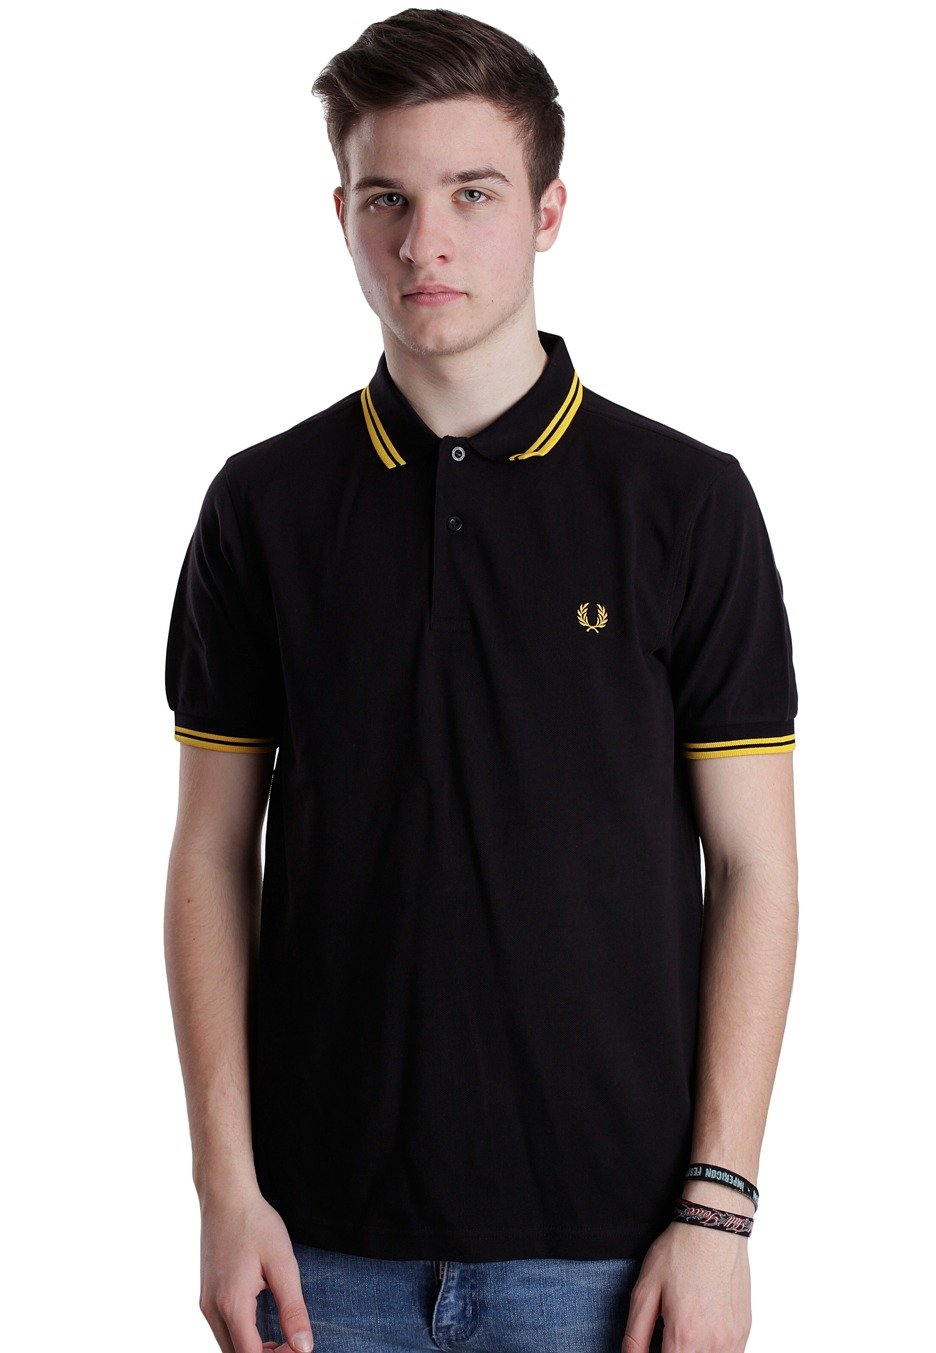 488e00150 Fred Perry - Slim Fit Twin Tipped Black/New Yellow - Polo - Streetwear Shop  - Impericon.com Worldwide